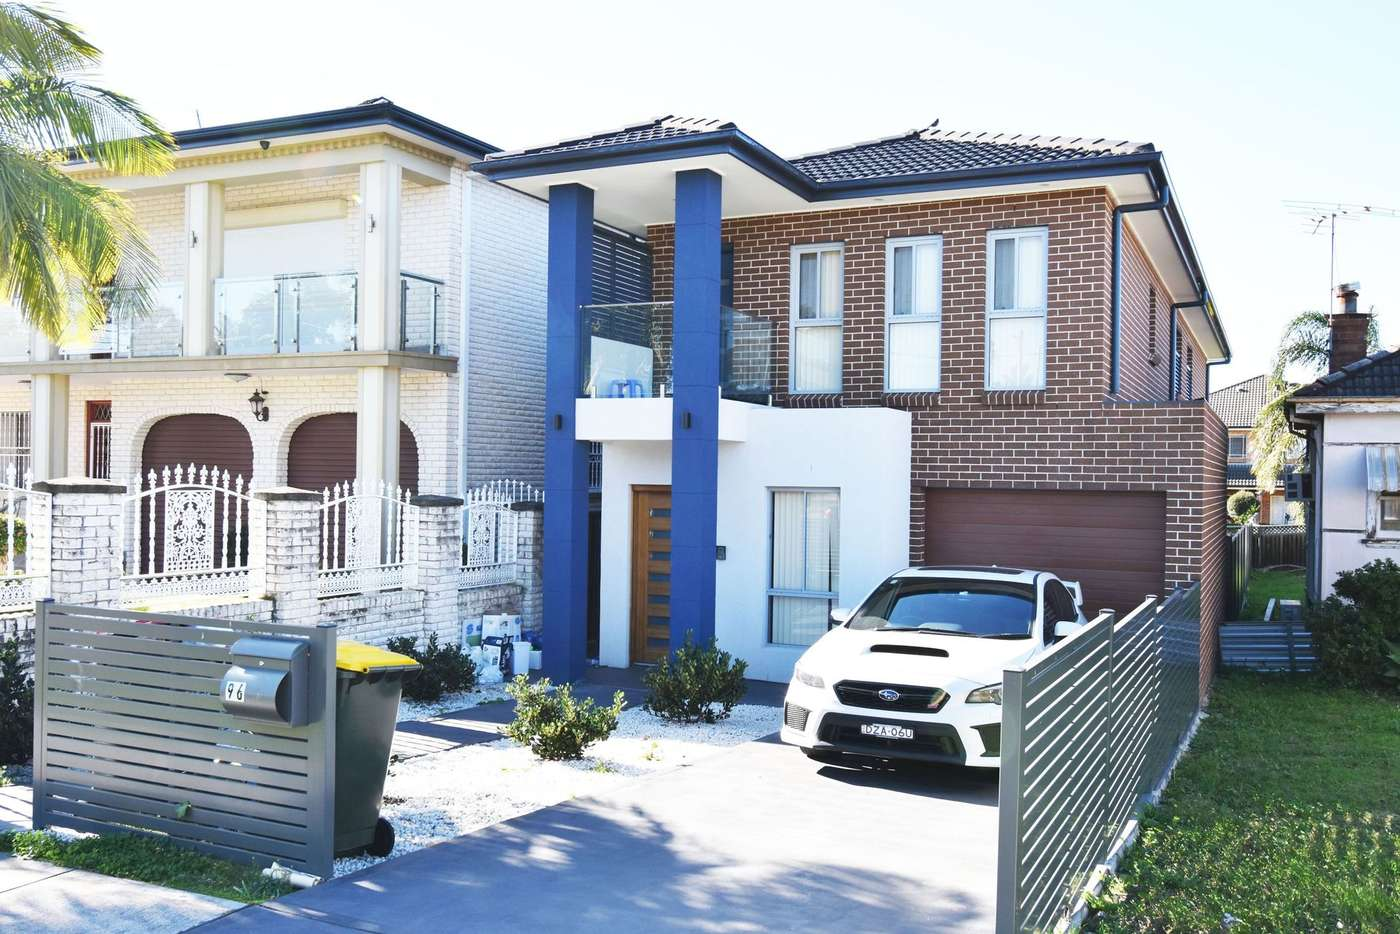 Main view of Homely house listing, 96 Water Street, Cabramatta West NSW 2166